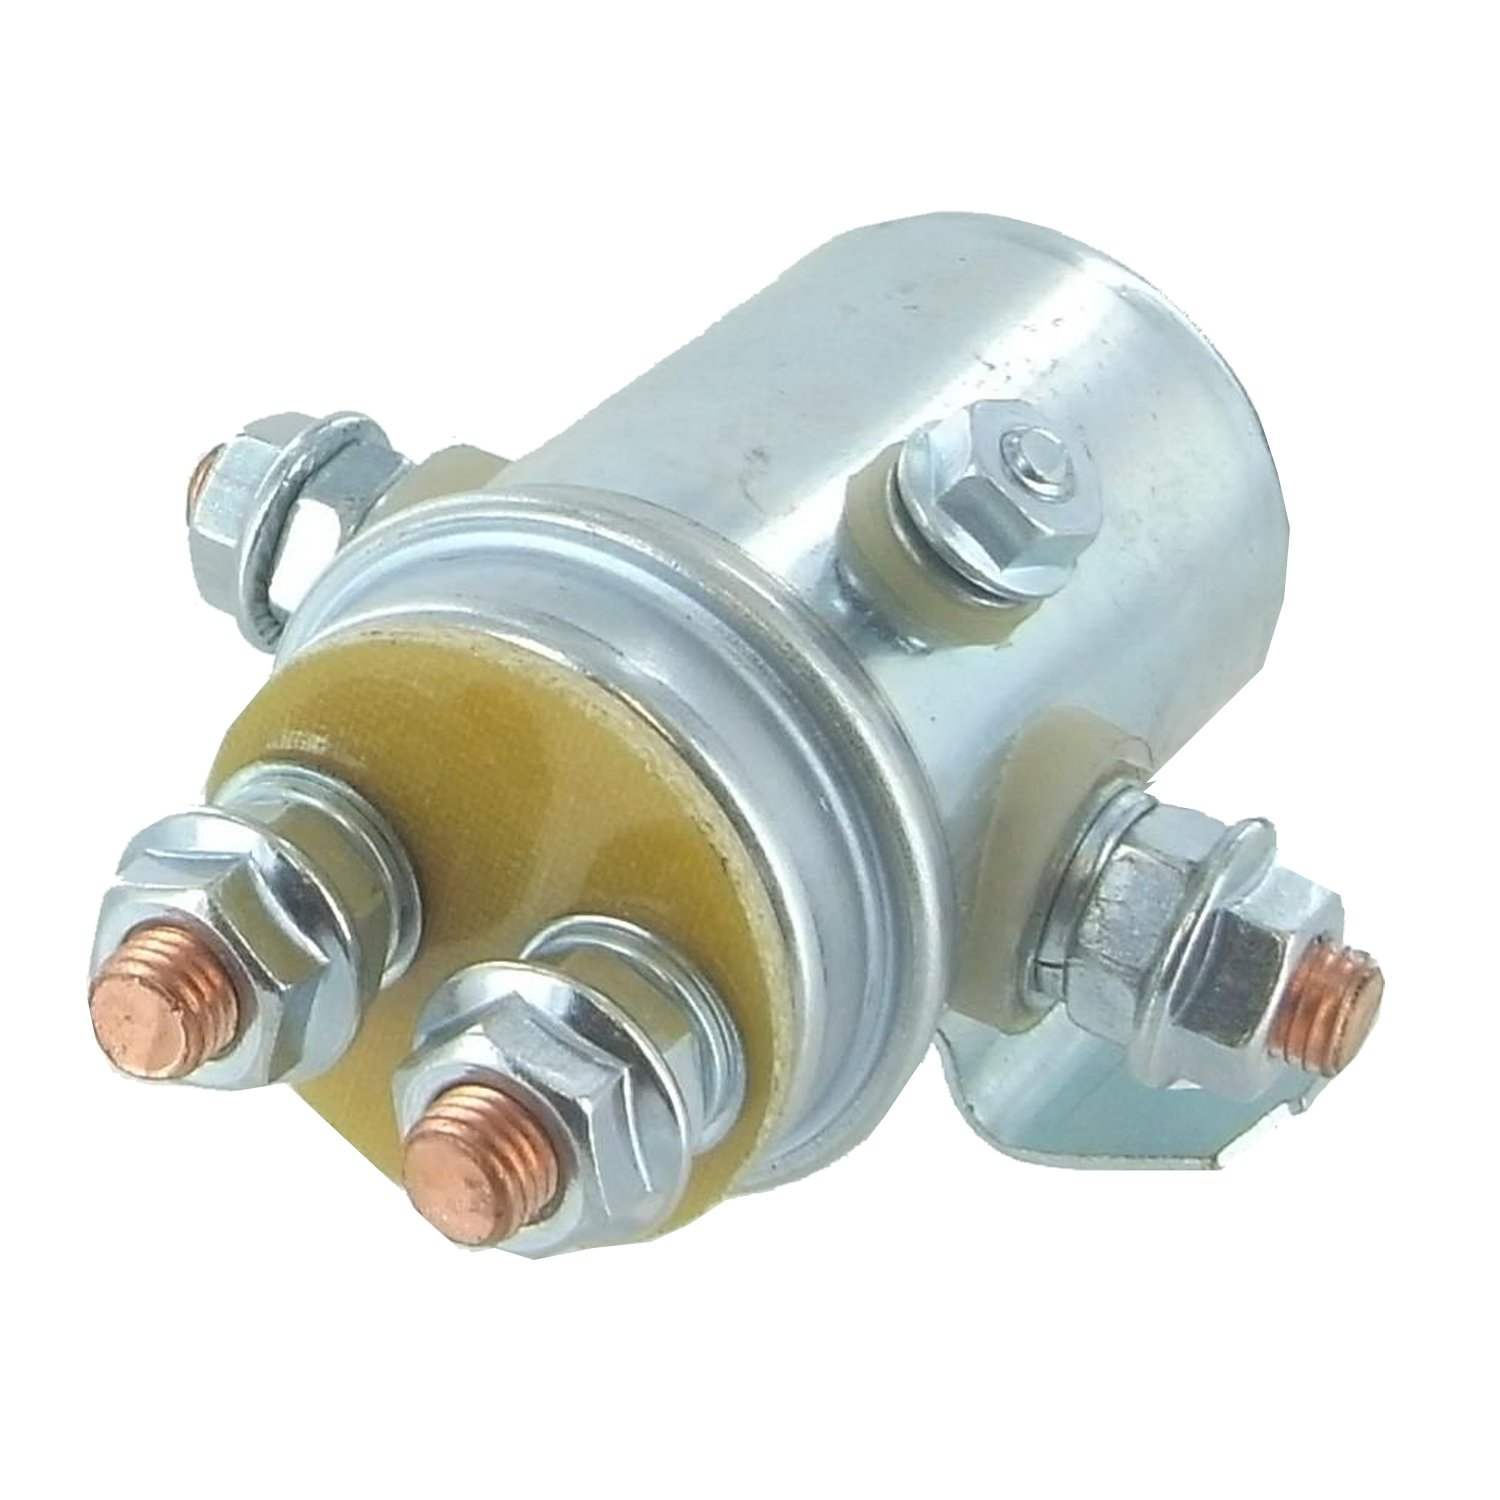 Amazon.com: Solenoid Relay Switch for Prestolite & Ramsey ...